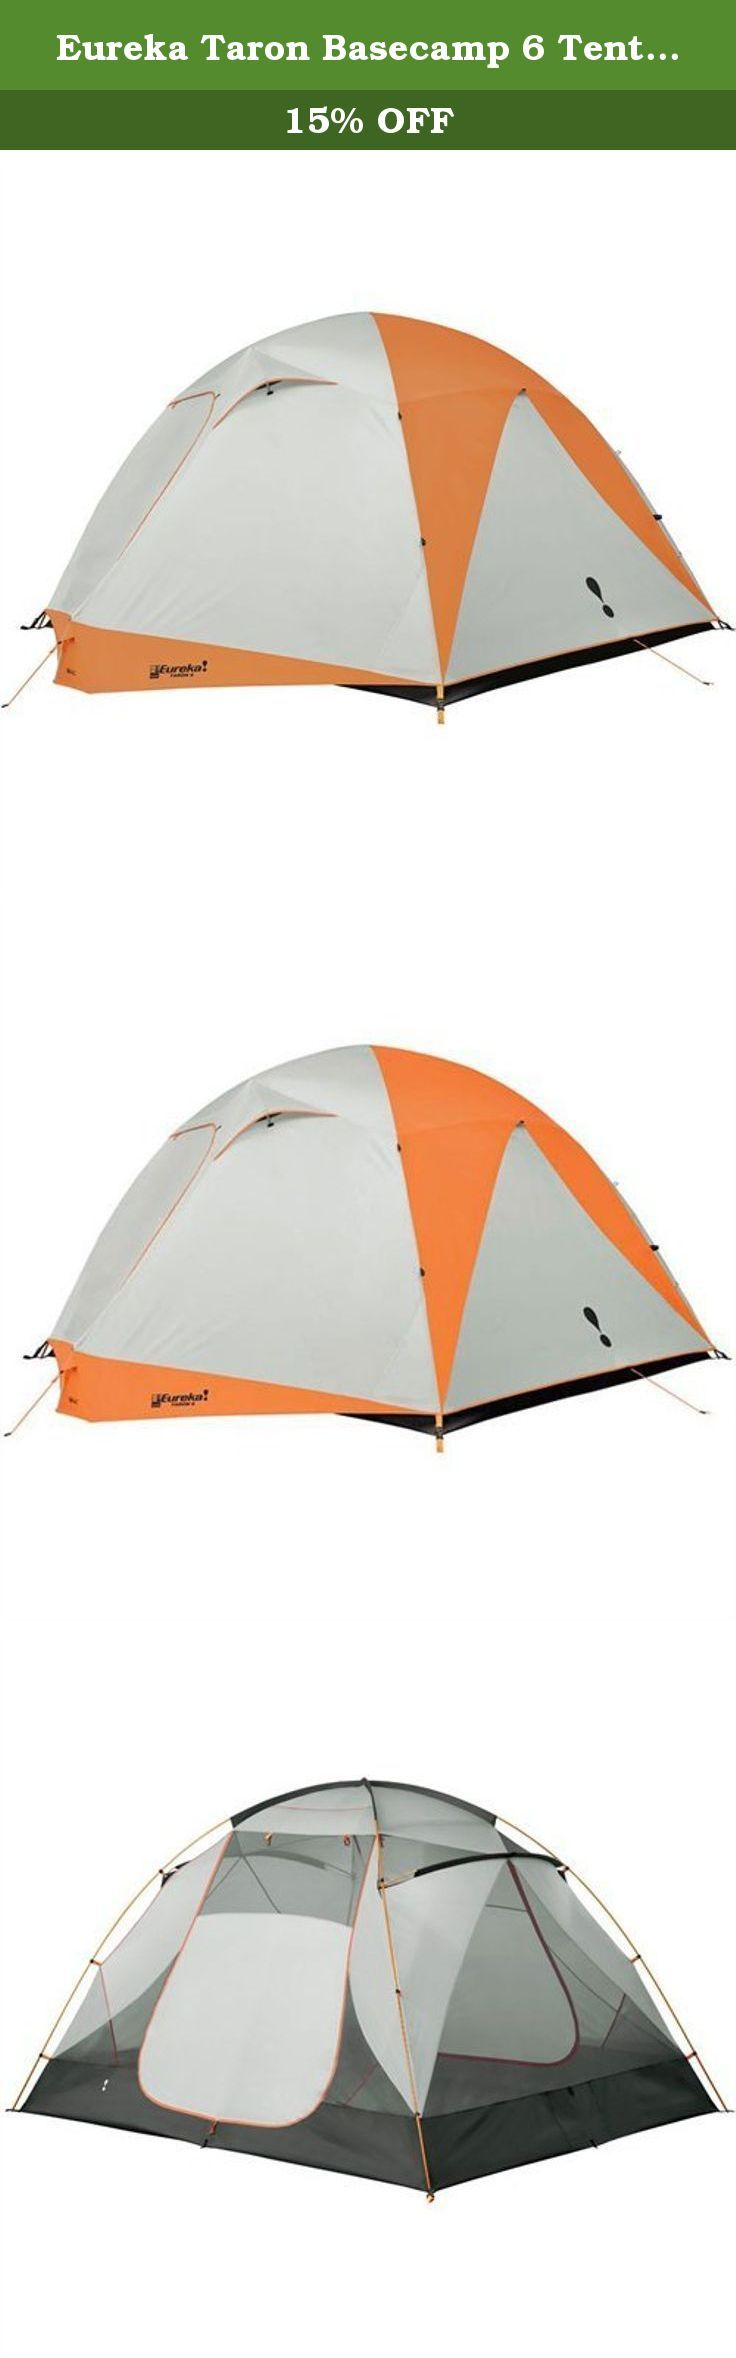 Eureka Taron Basec& 6 Tent - 6 Person. The Taron Basec& 6 Tent is a  sc 1 st  Pinterest & Best 25+ Eureka camping ideas on Pinterest | Eureka springs ...